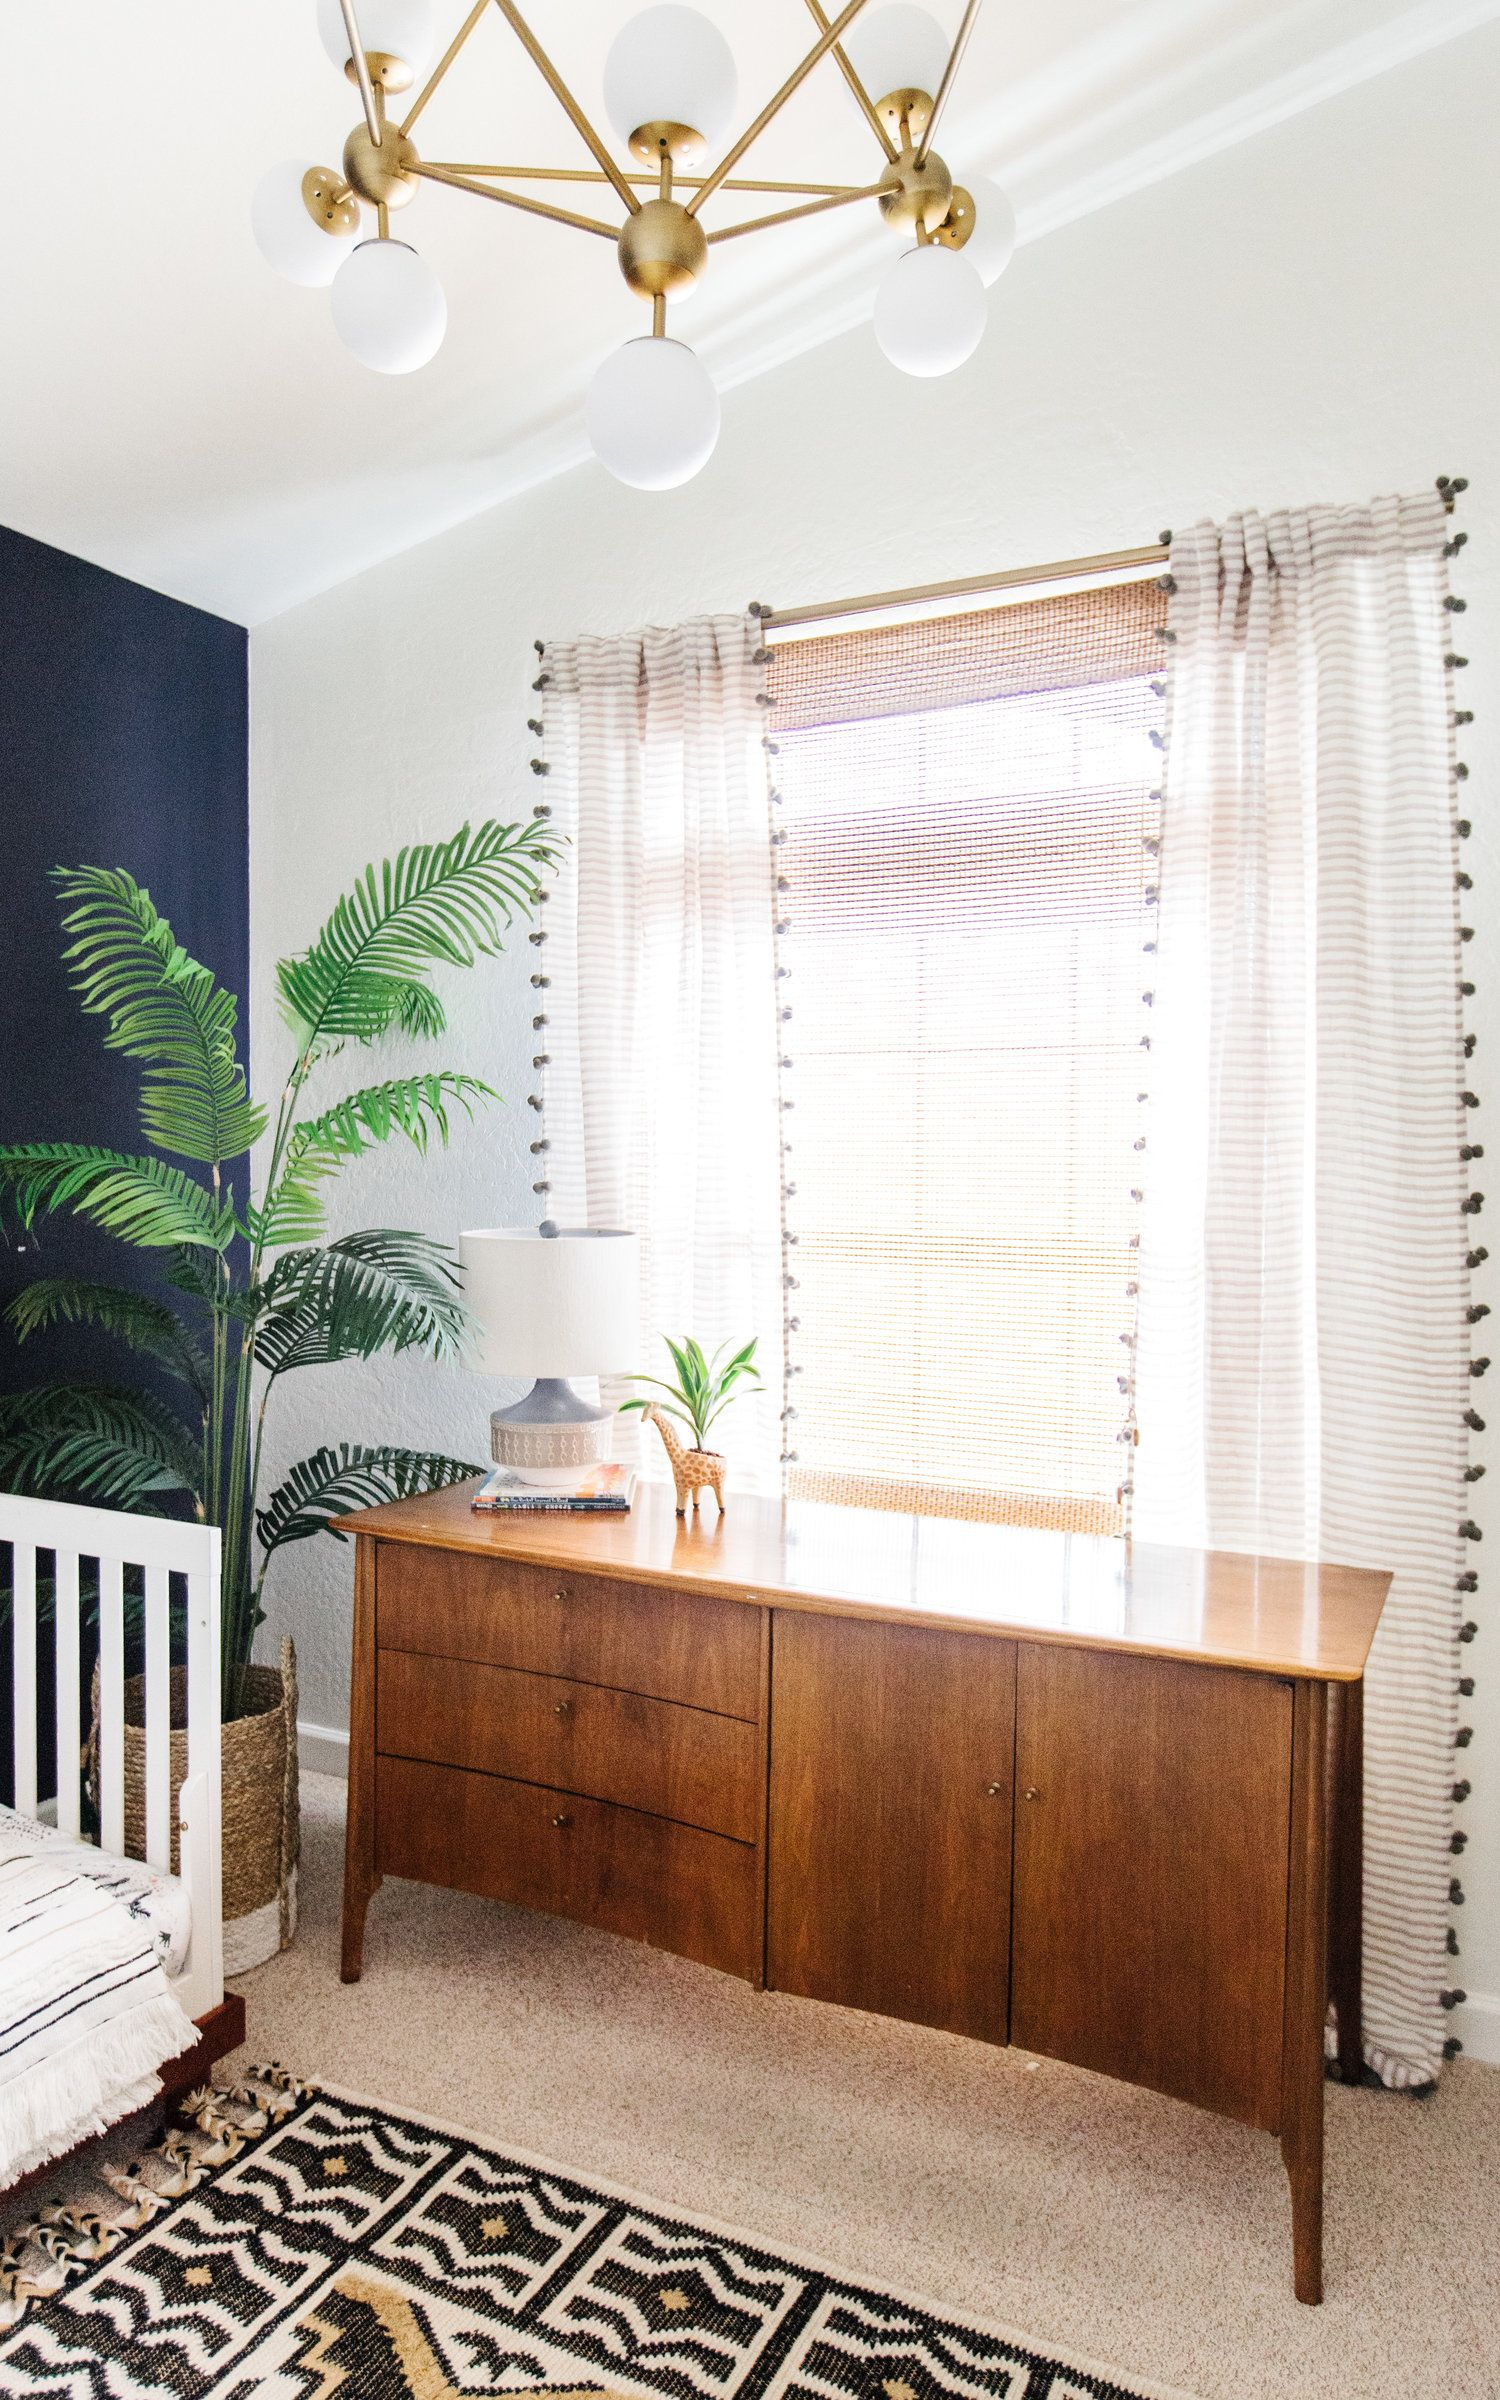 in indoor curtain home fashionable dark tiles corner chest century curtains plus red texas house design modern tastes floor mid plants office drawer the wooden white of hardwood color with remodeled window interior brown ideas decorating